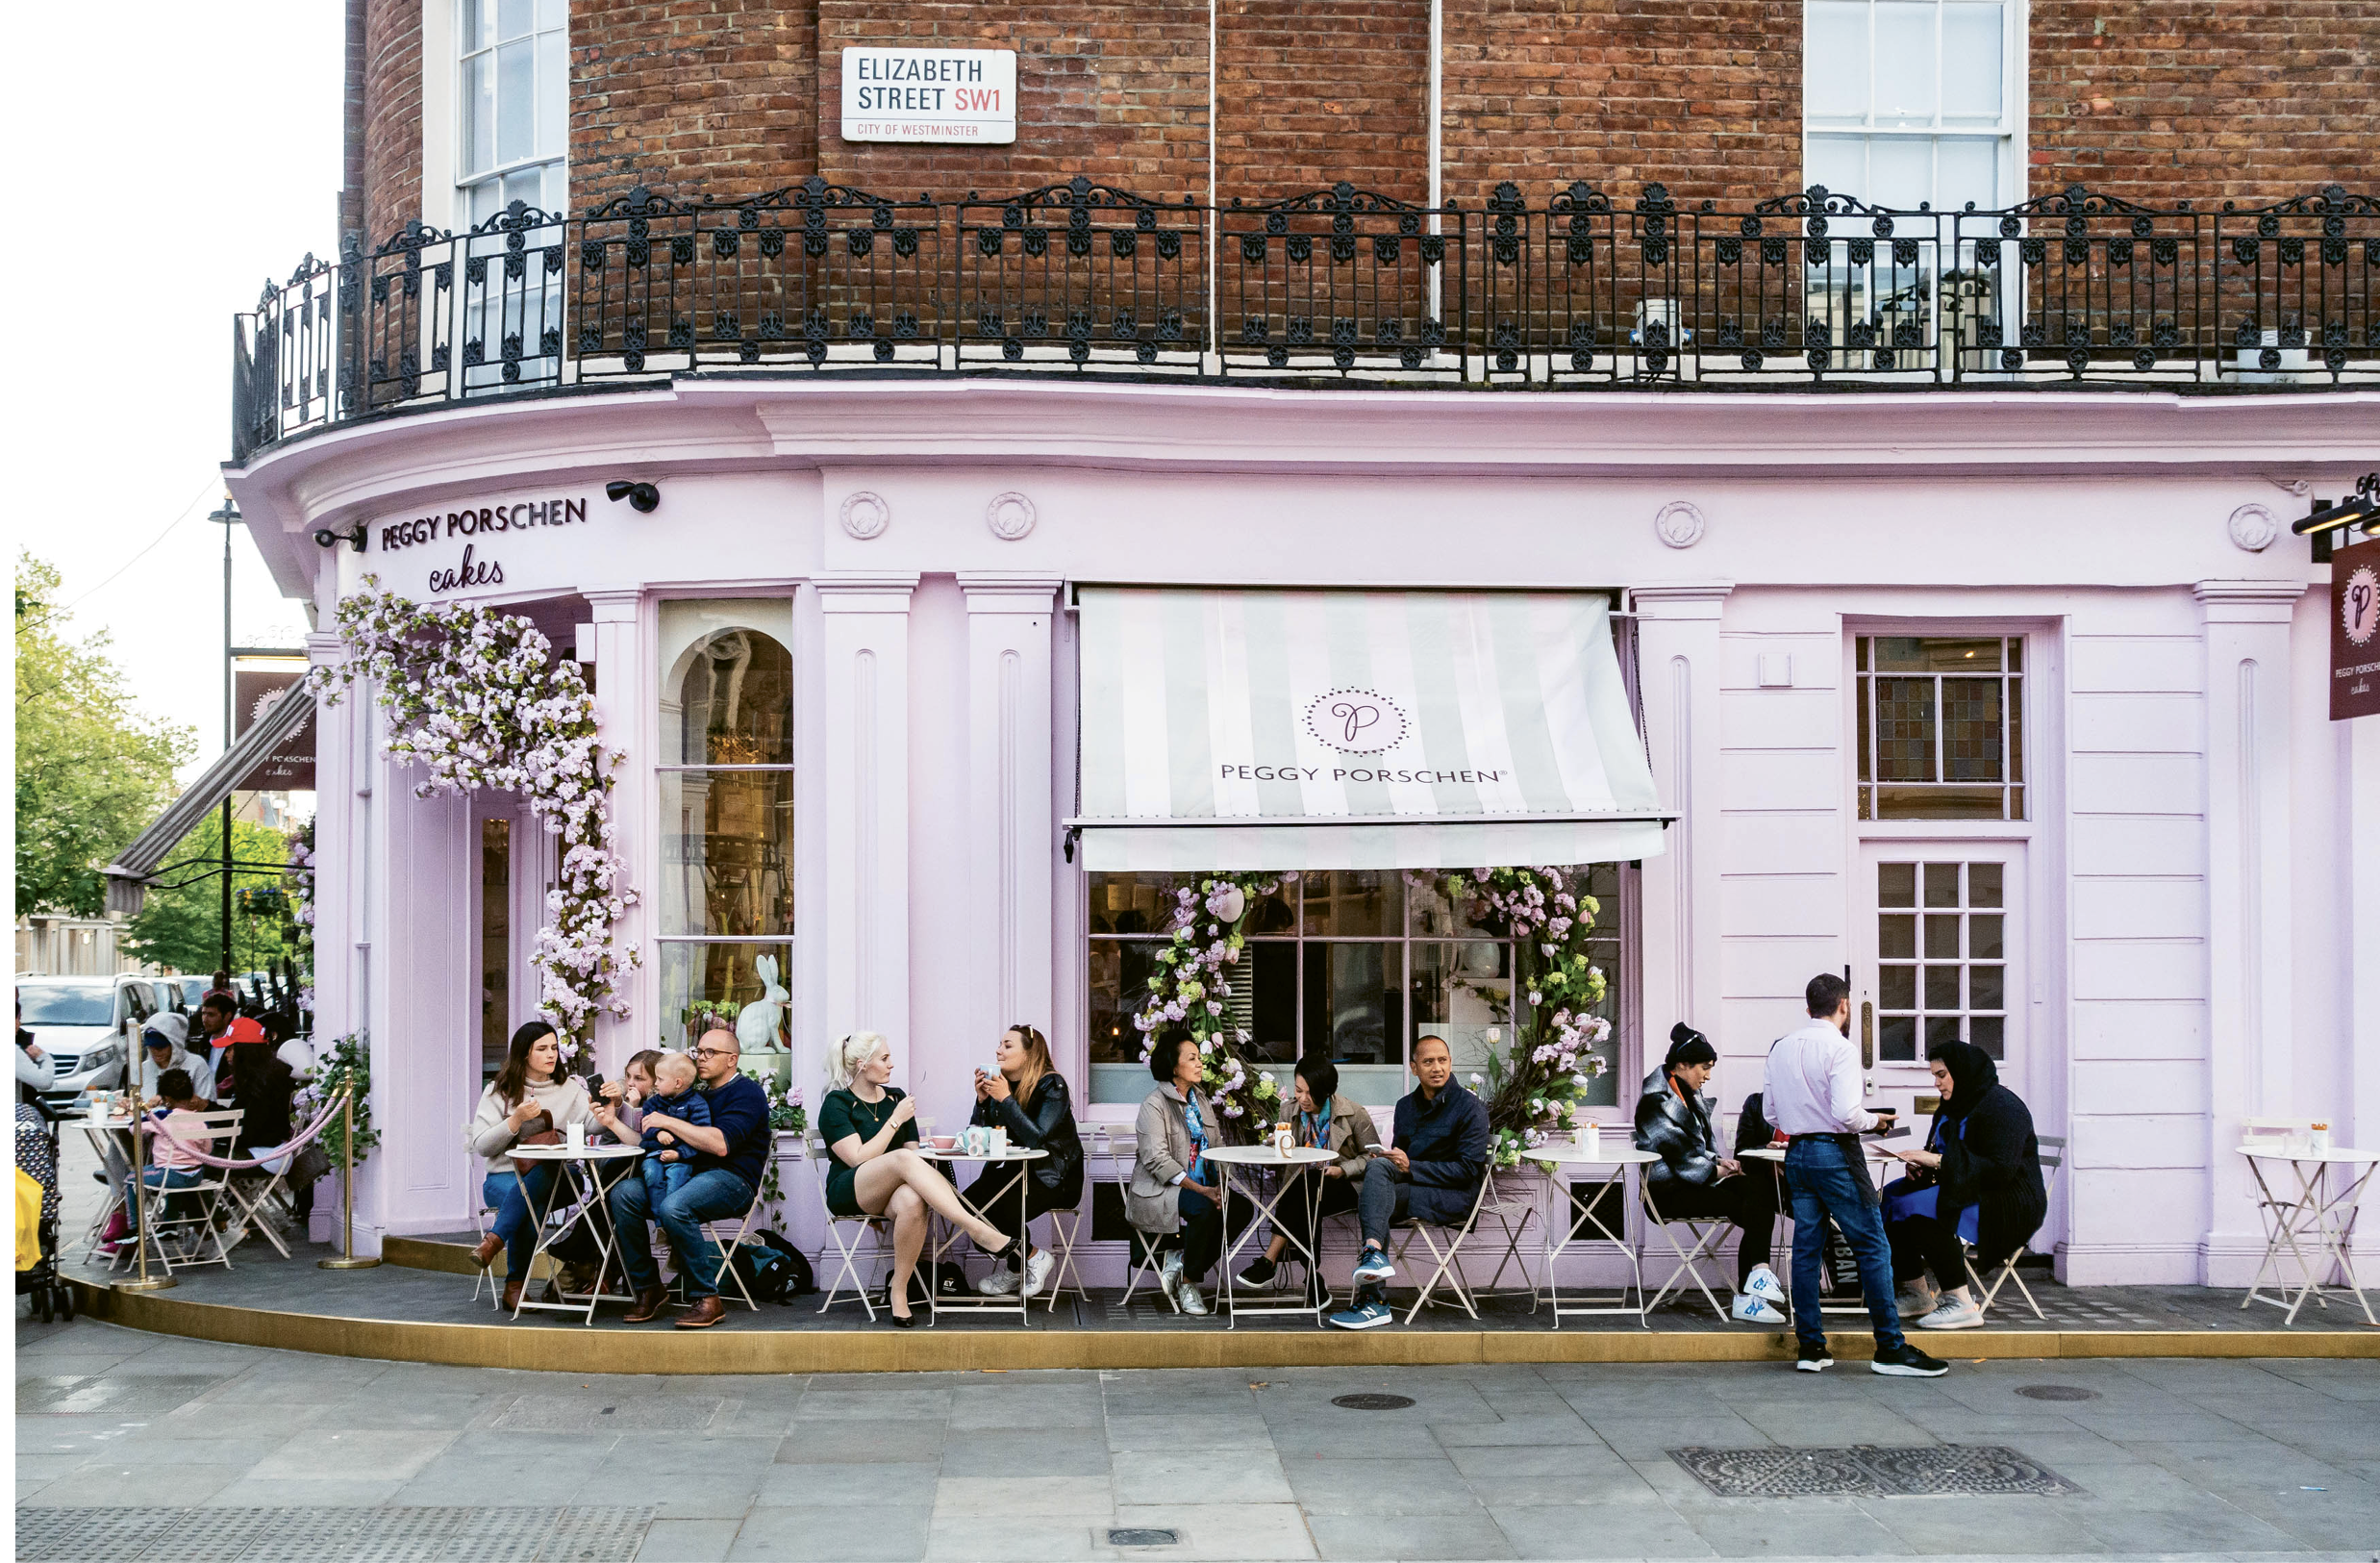 The pink Peggy Porschen cake parlor which attracts a stream of Instagram photo seekers